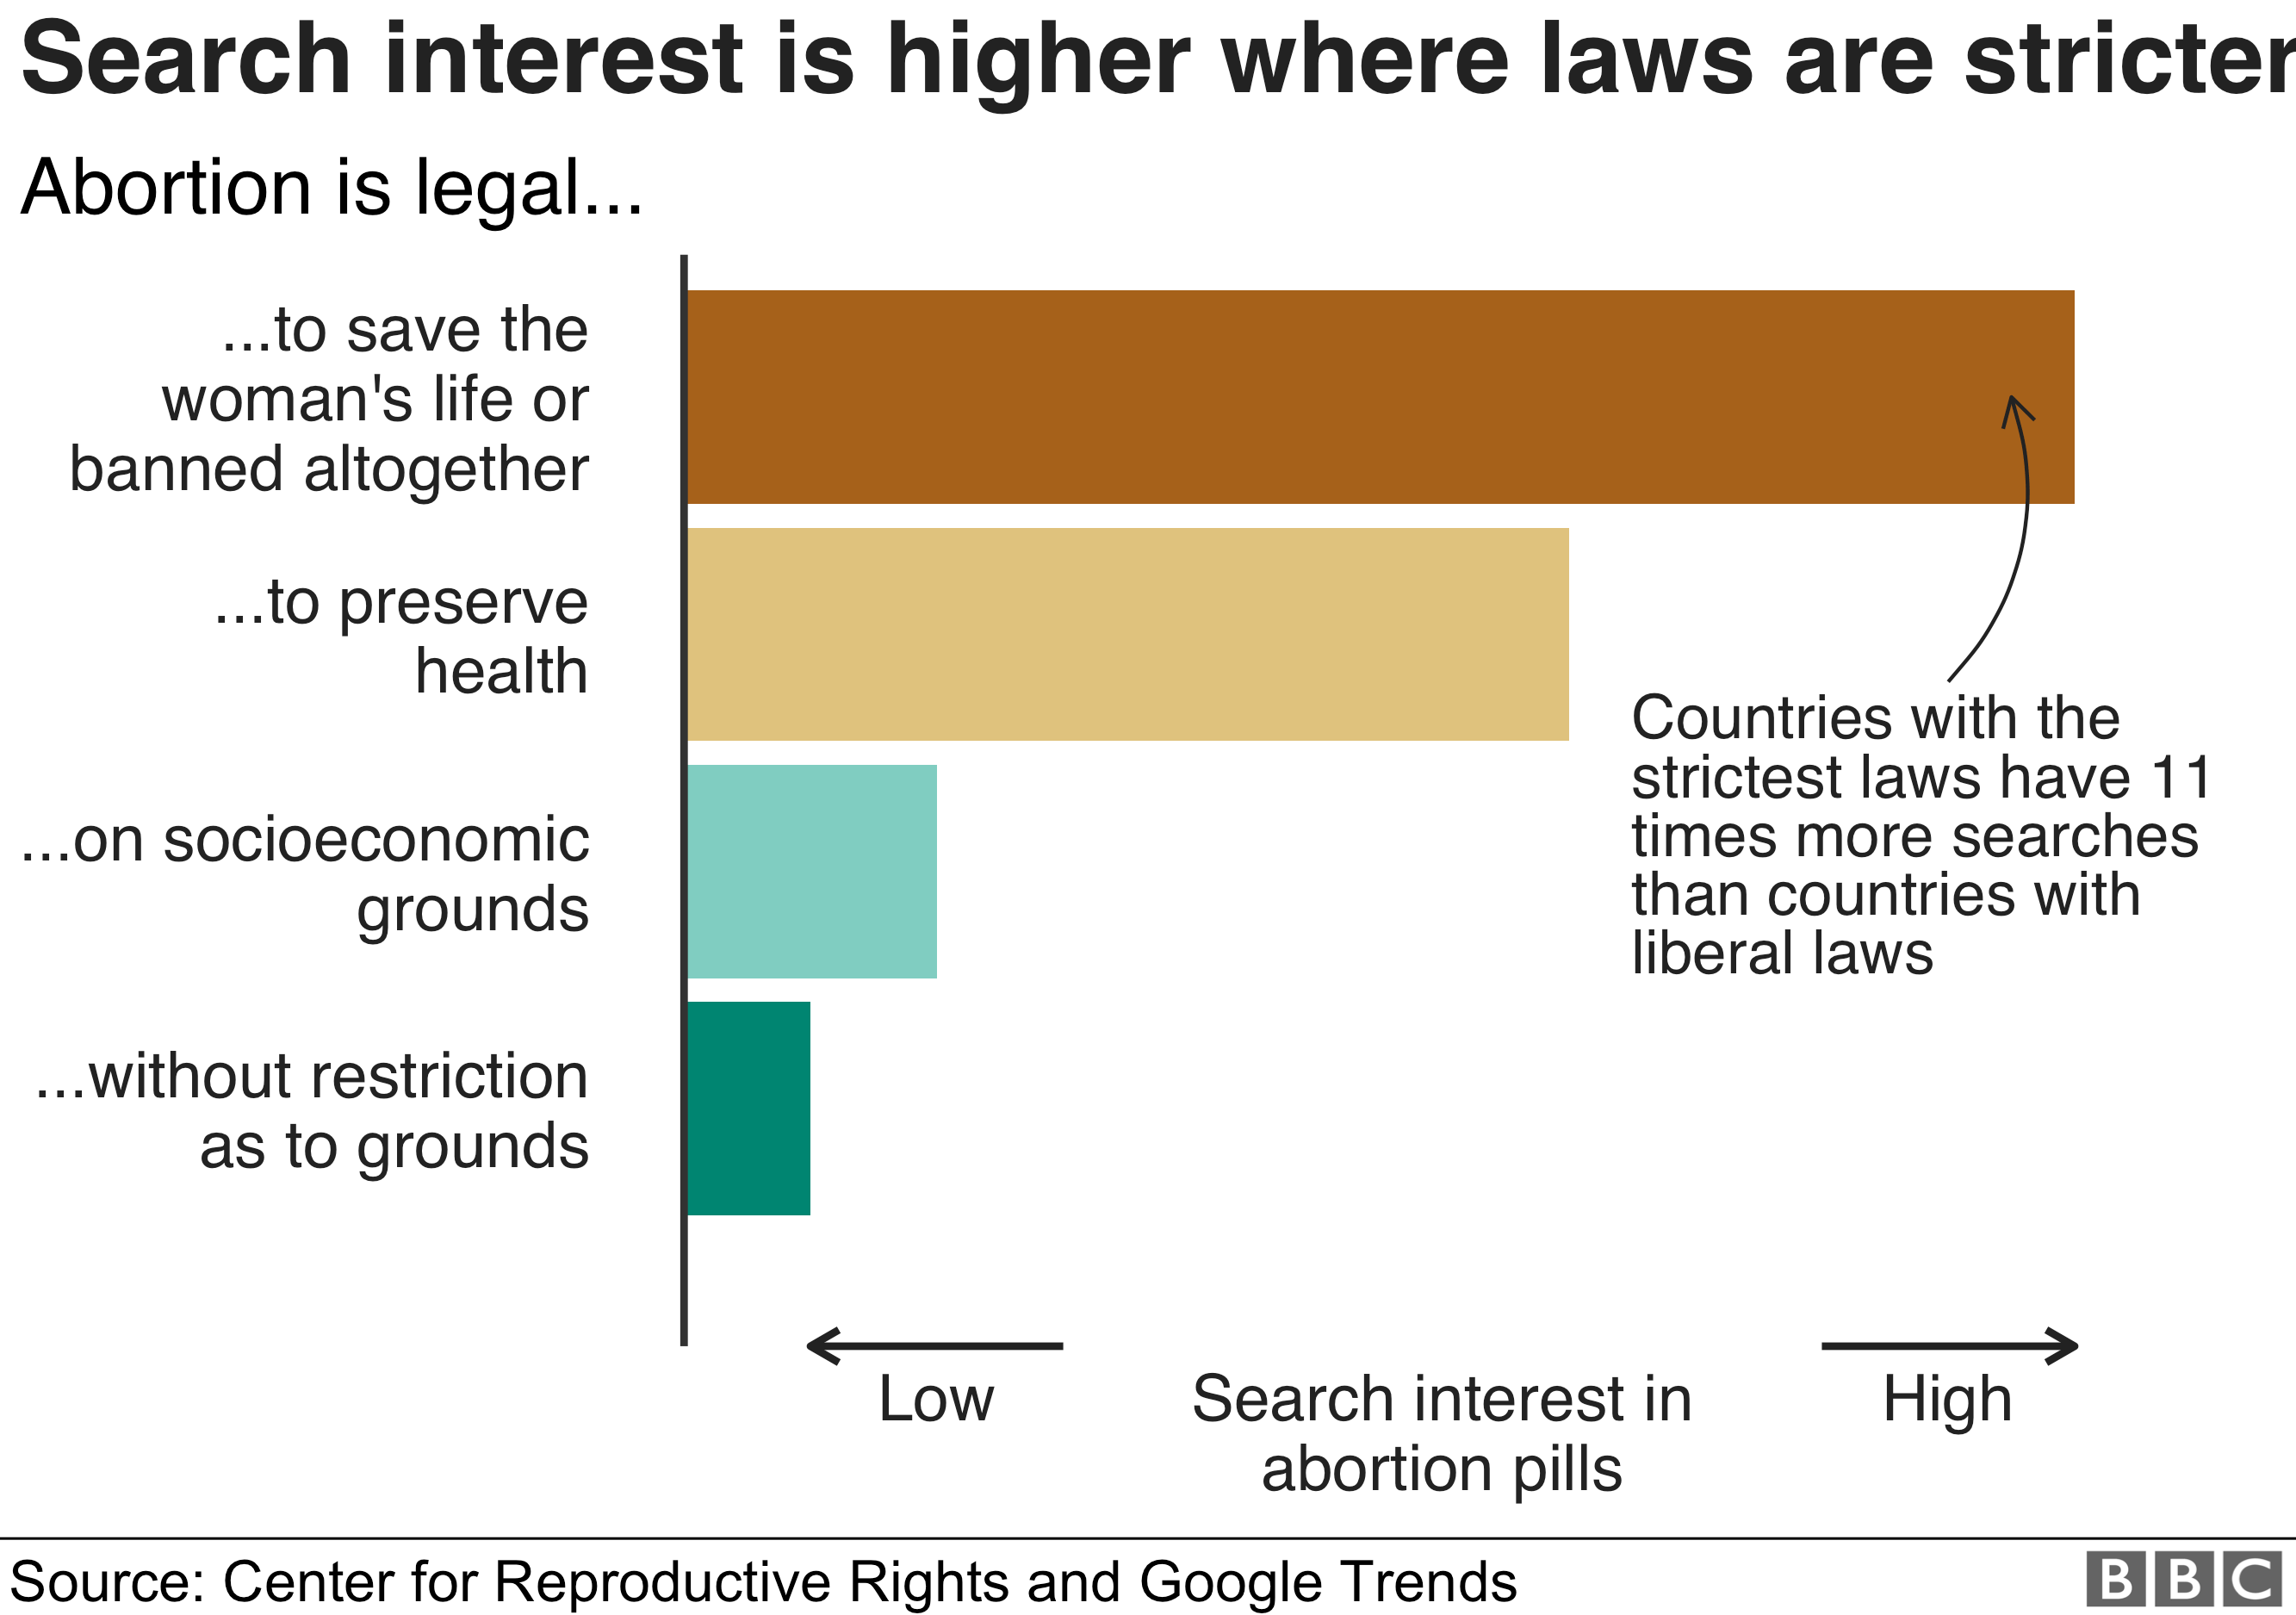 Chart: Search interest is higher where laws are stricter